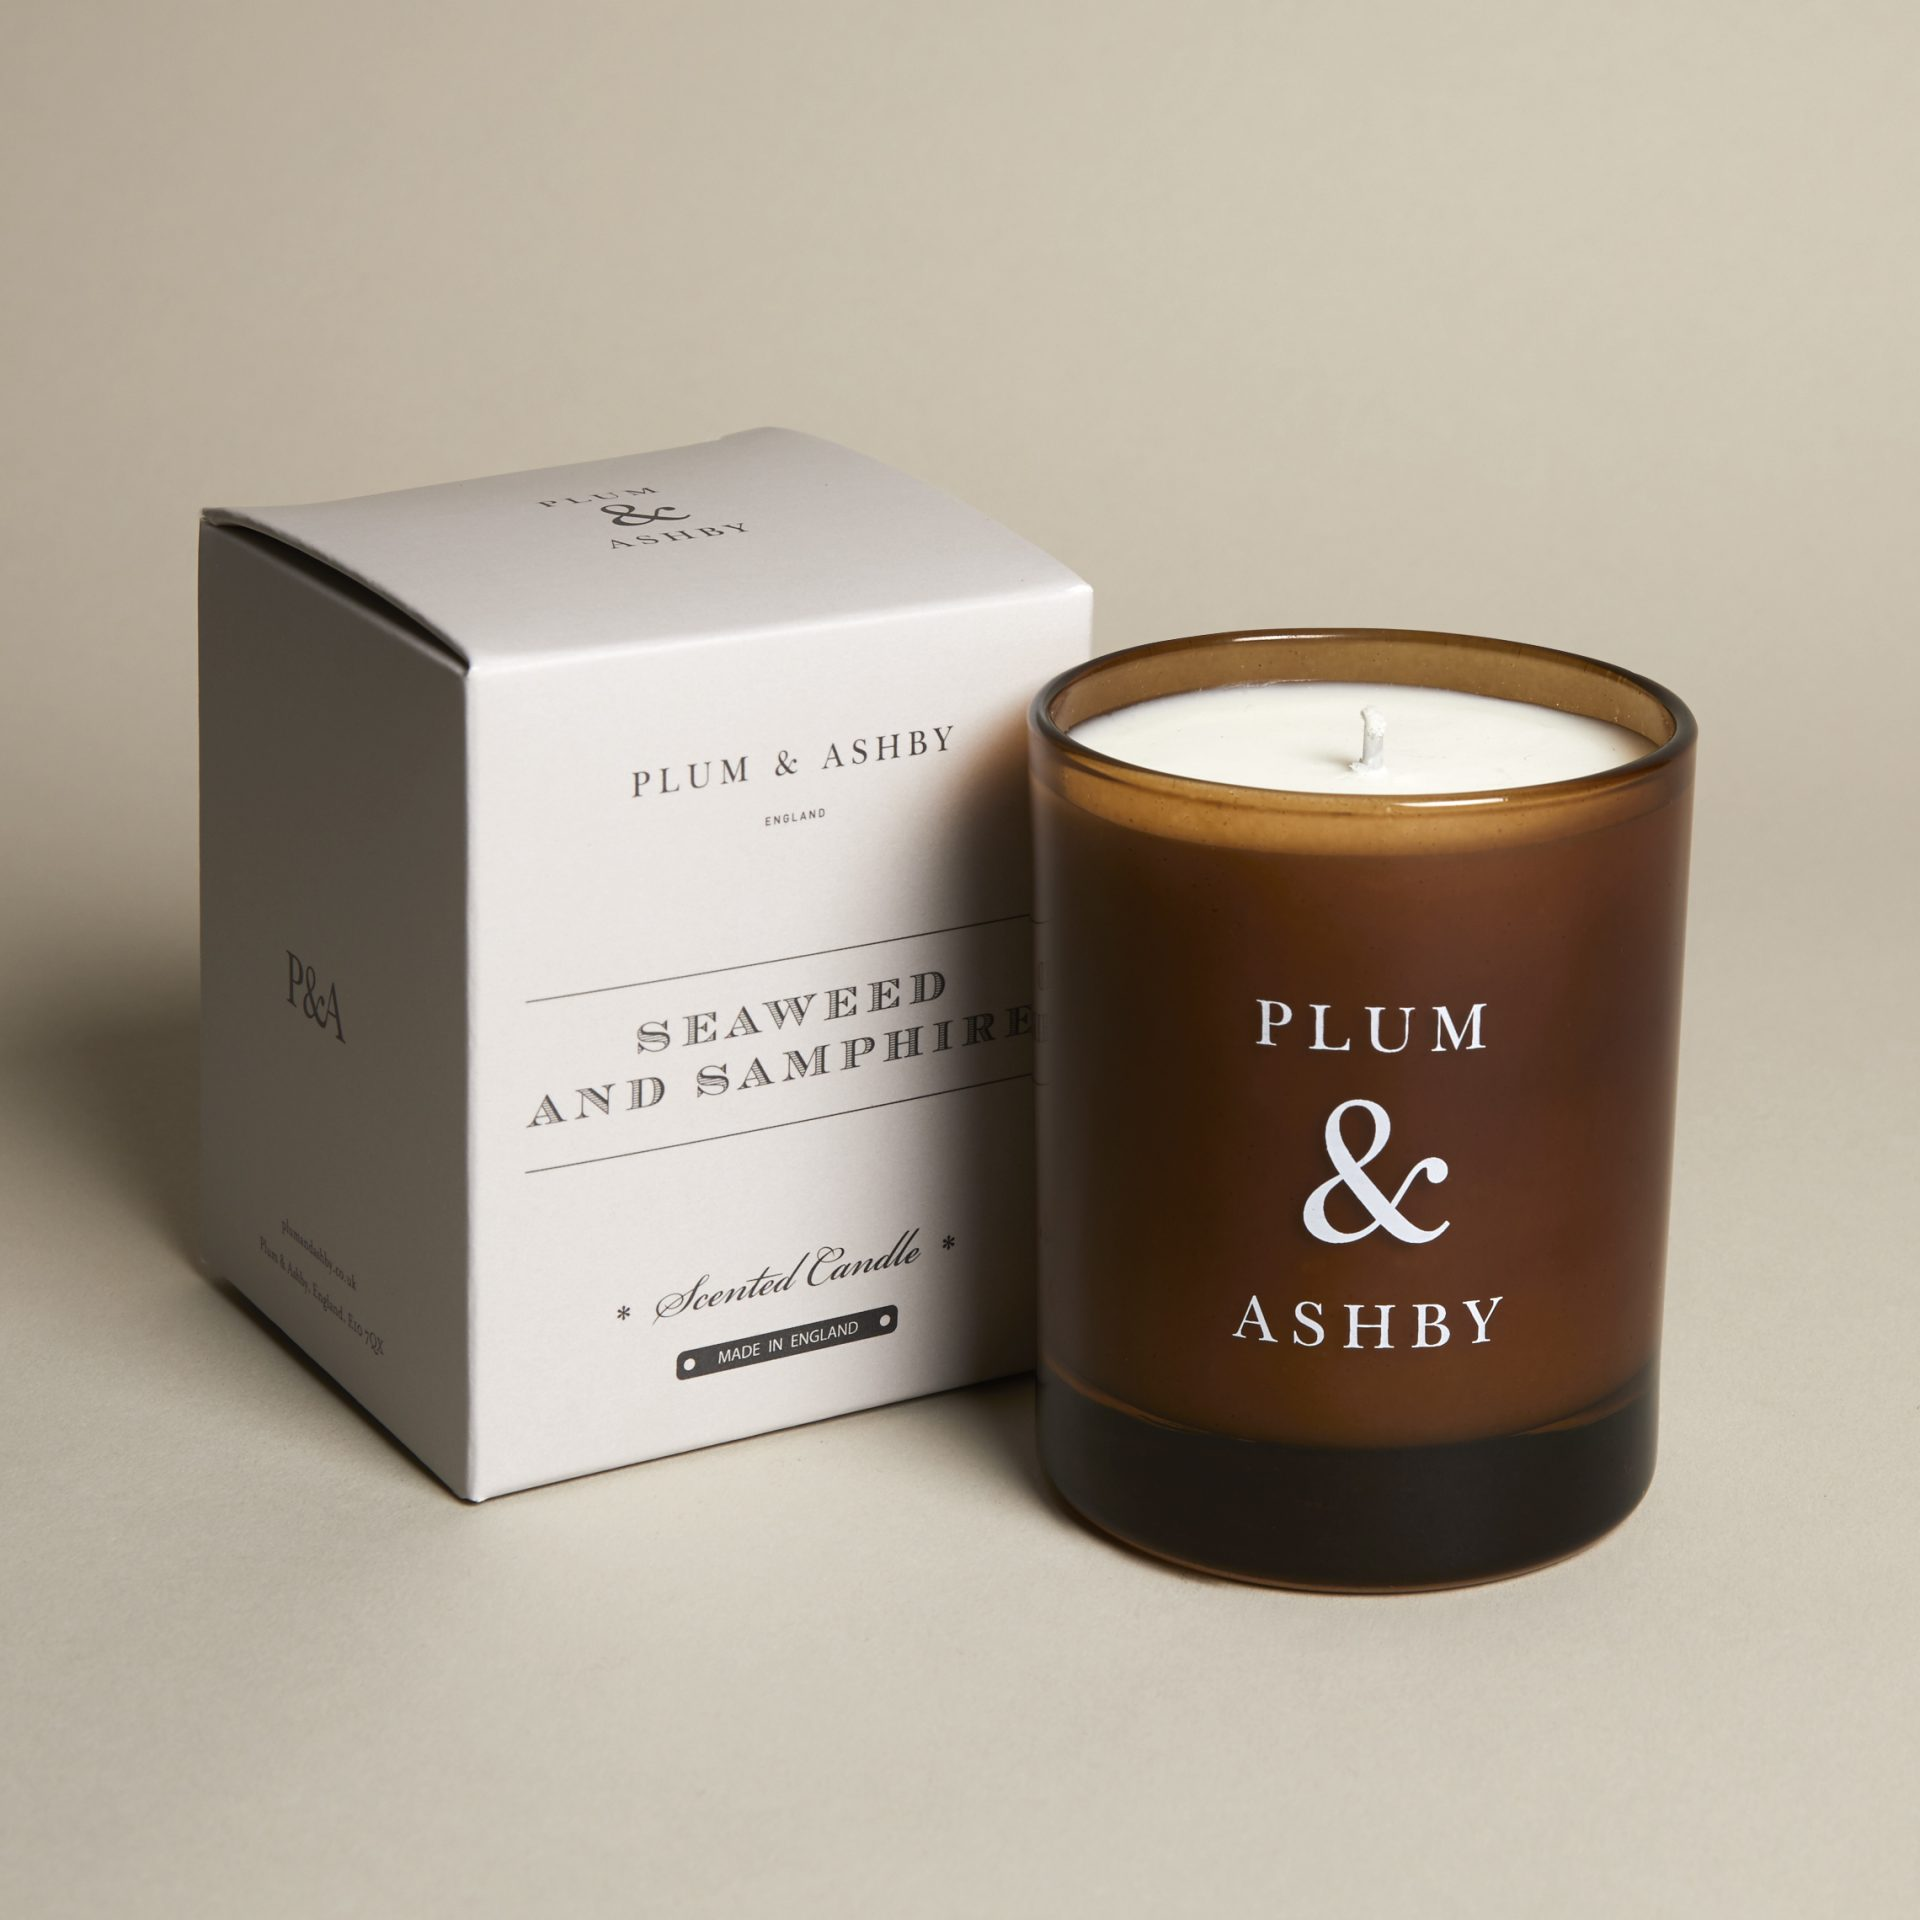 Plum and Ashby Seaweed & Samphire Scented Candle